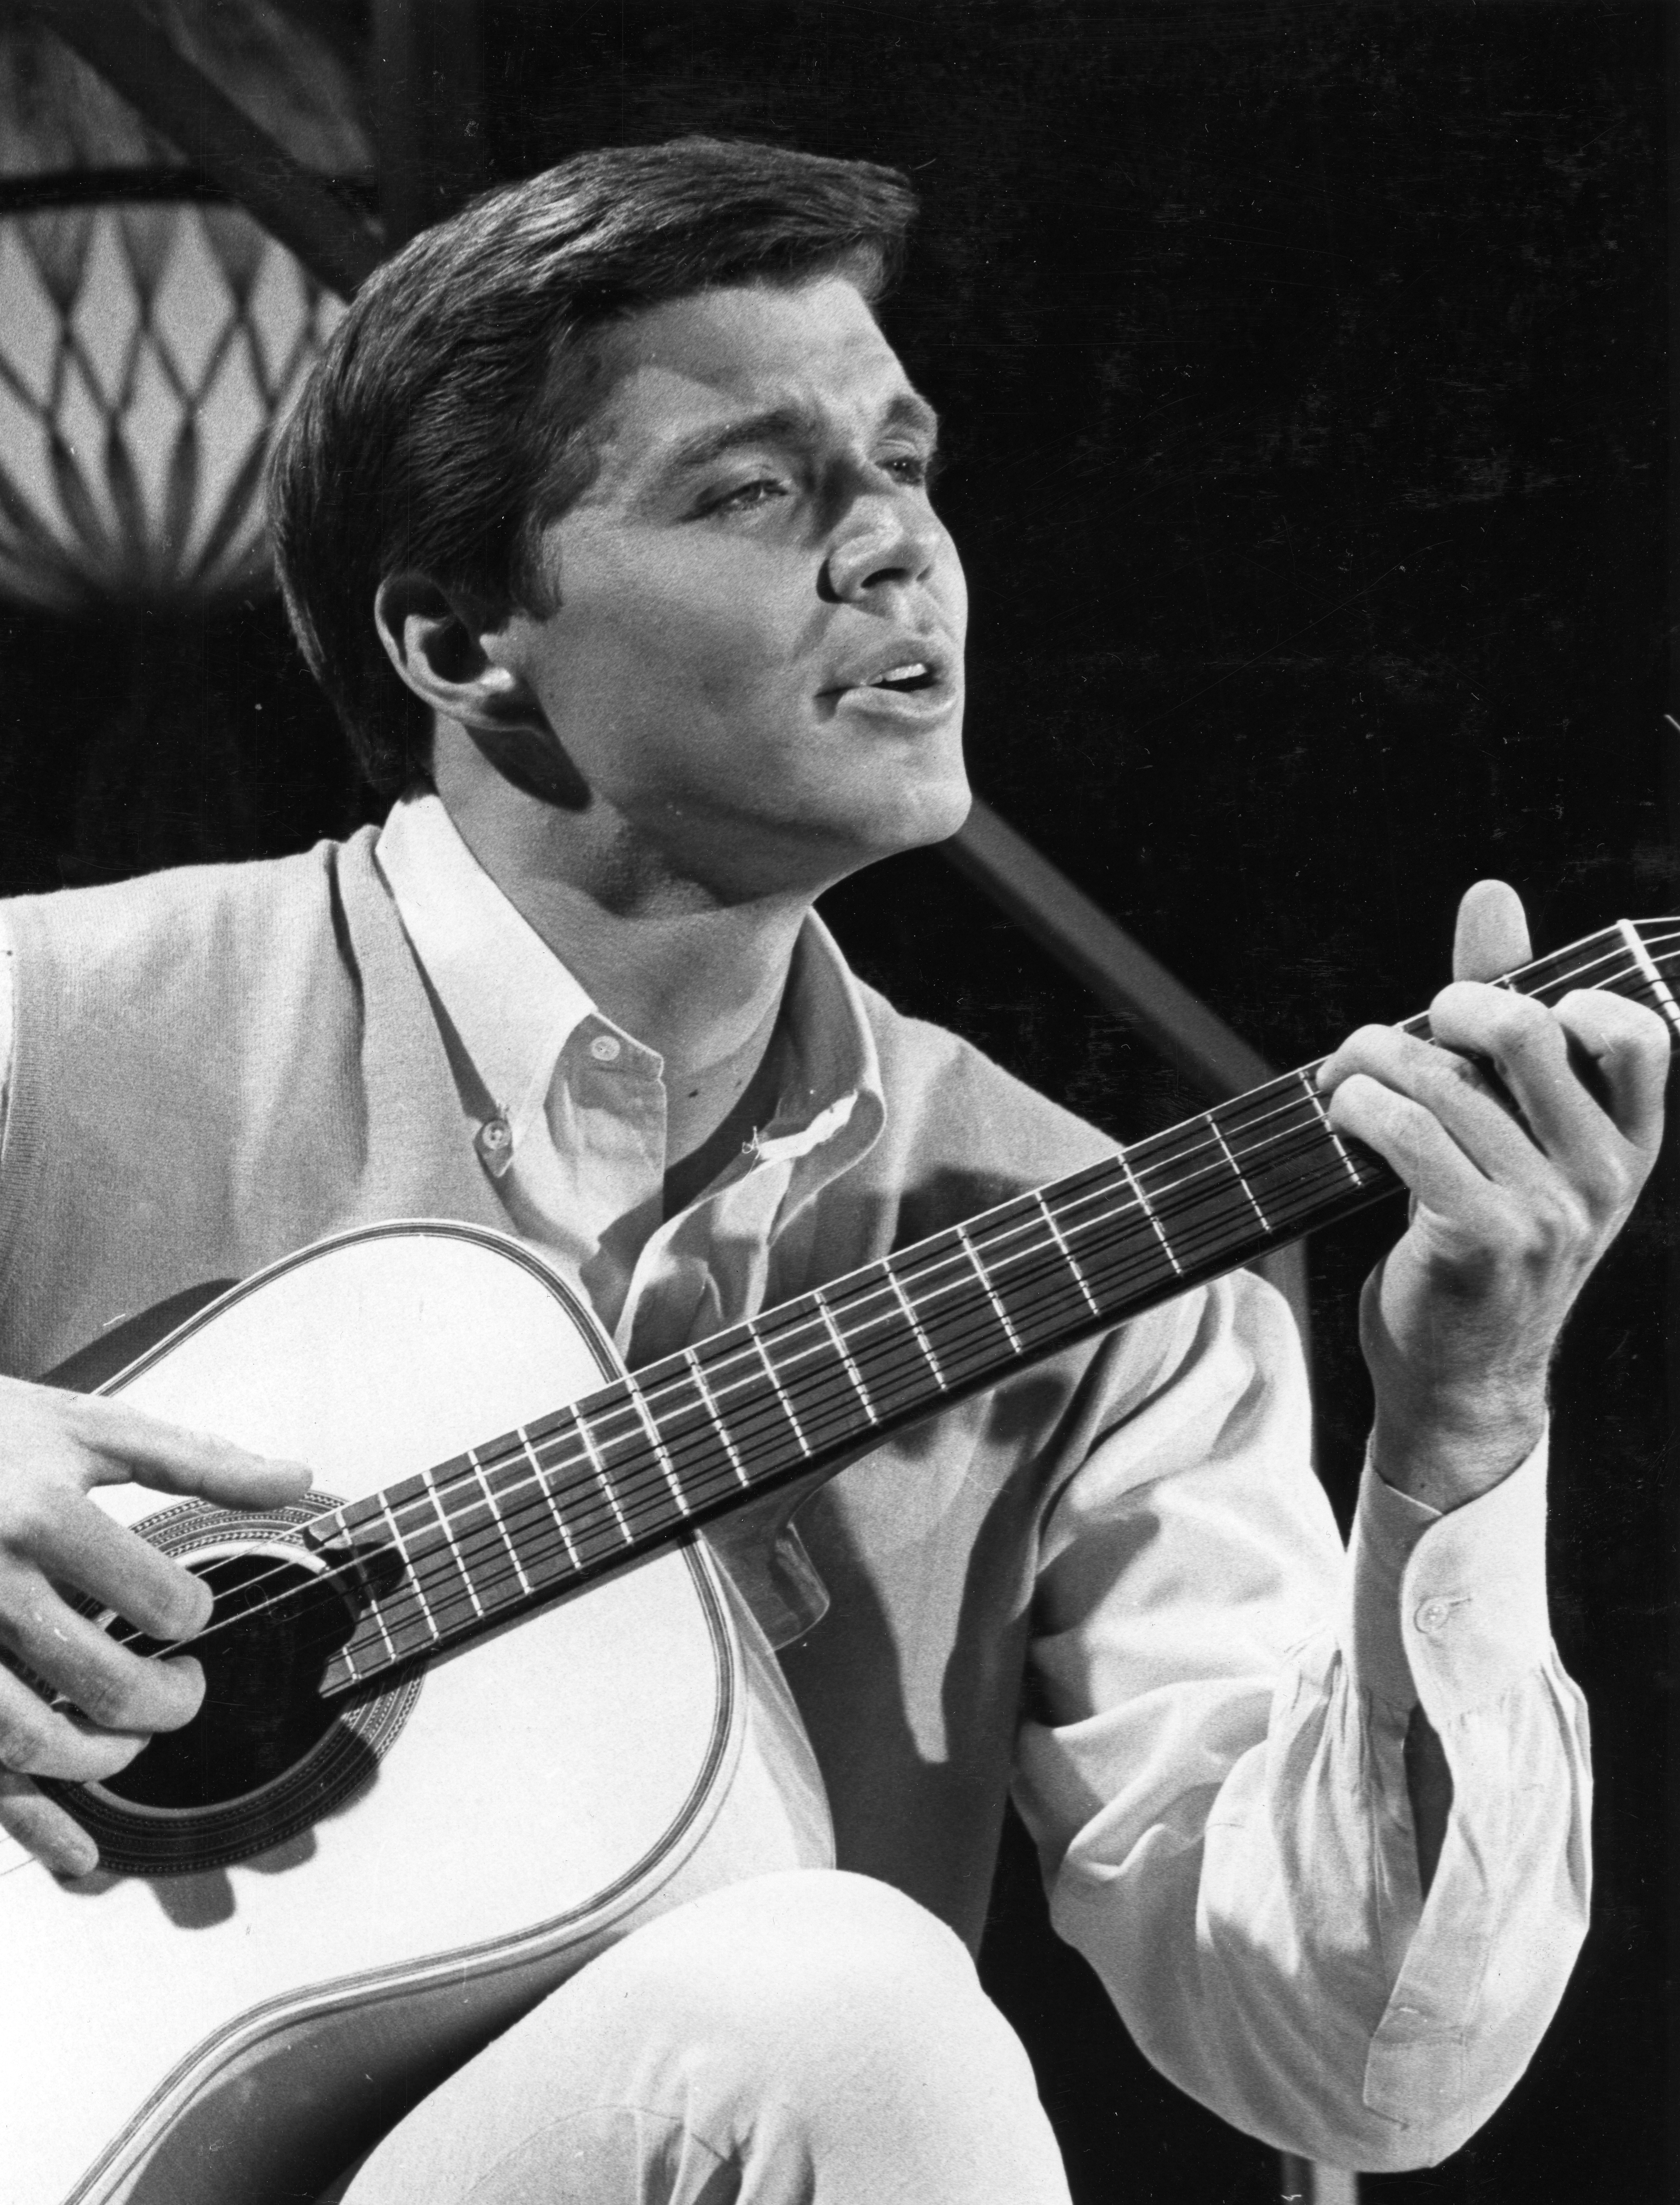 John Davidson in 1966. Here is the original caption of this photo: The versatile talent of 24-year-old John Davidson, shown with his guitar in Hollywood, came out after realizing, while studying for the ministry, that his appeal was in. much in speaking to an audience.  (